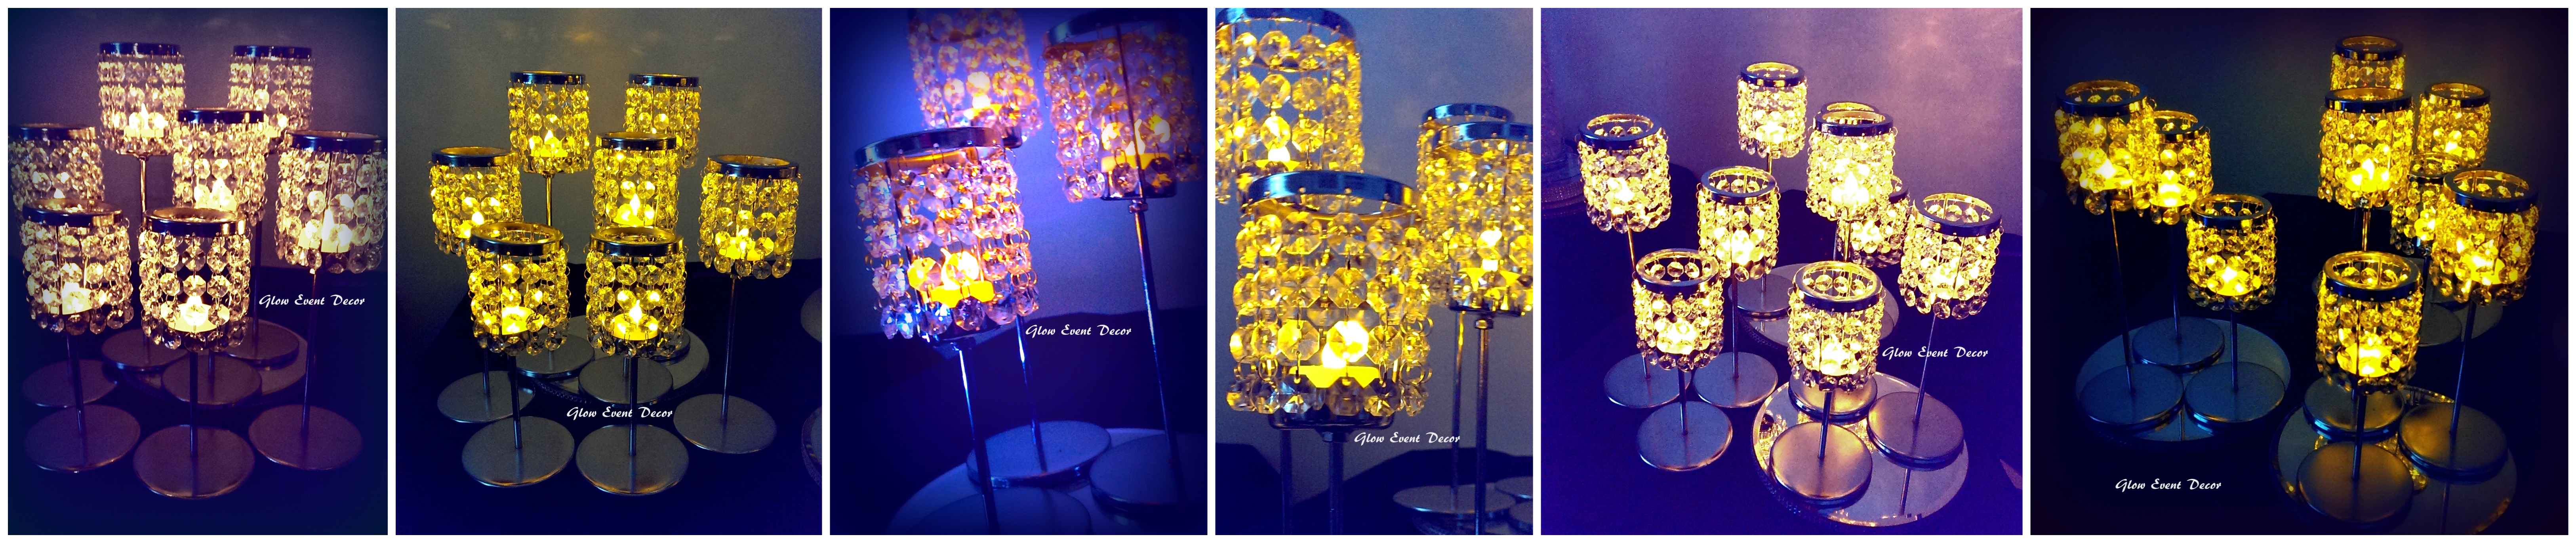 led t lite candle chandelier table decoration centrepieces for hire from Glow Event Decor